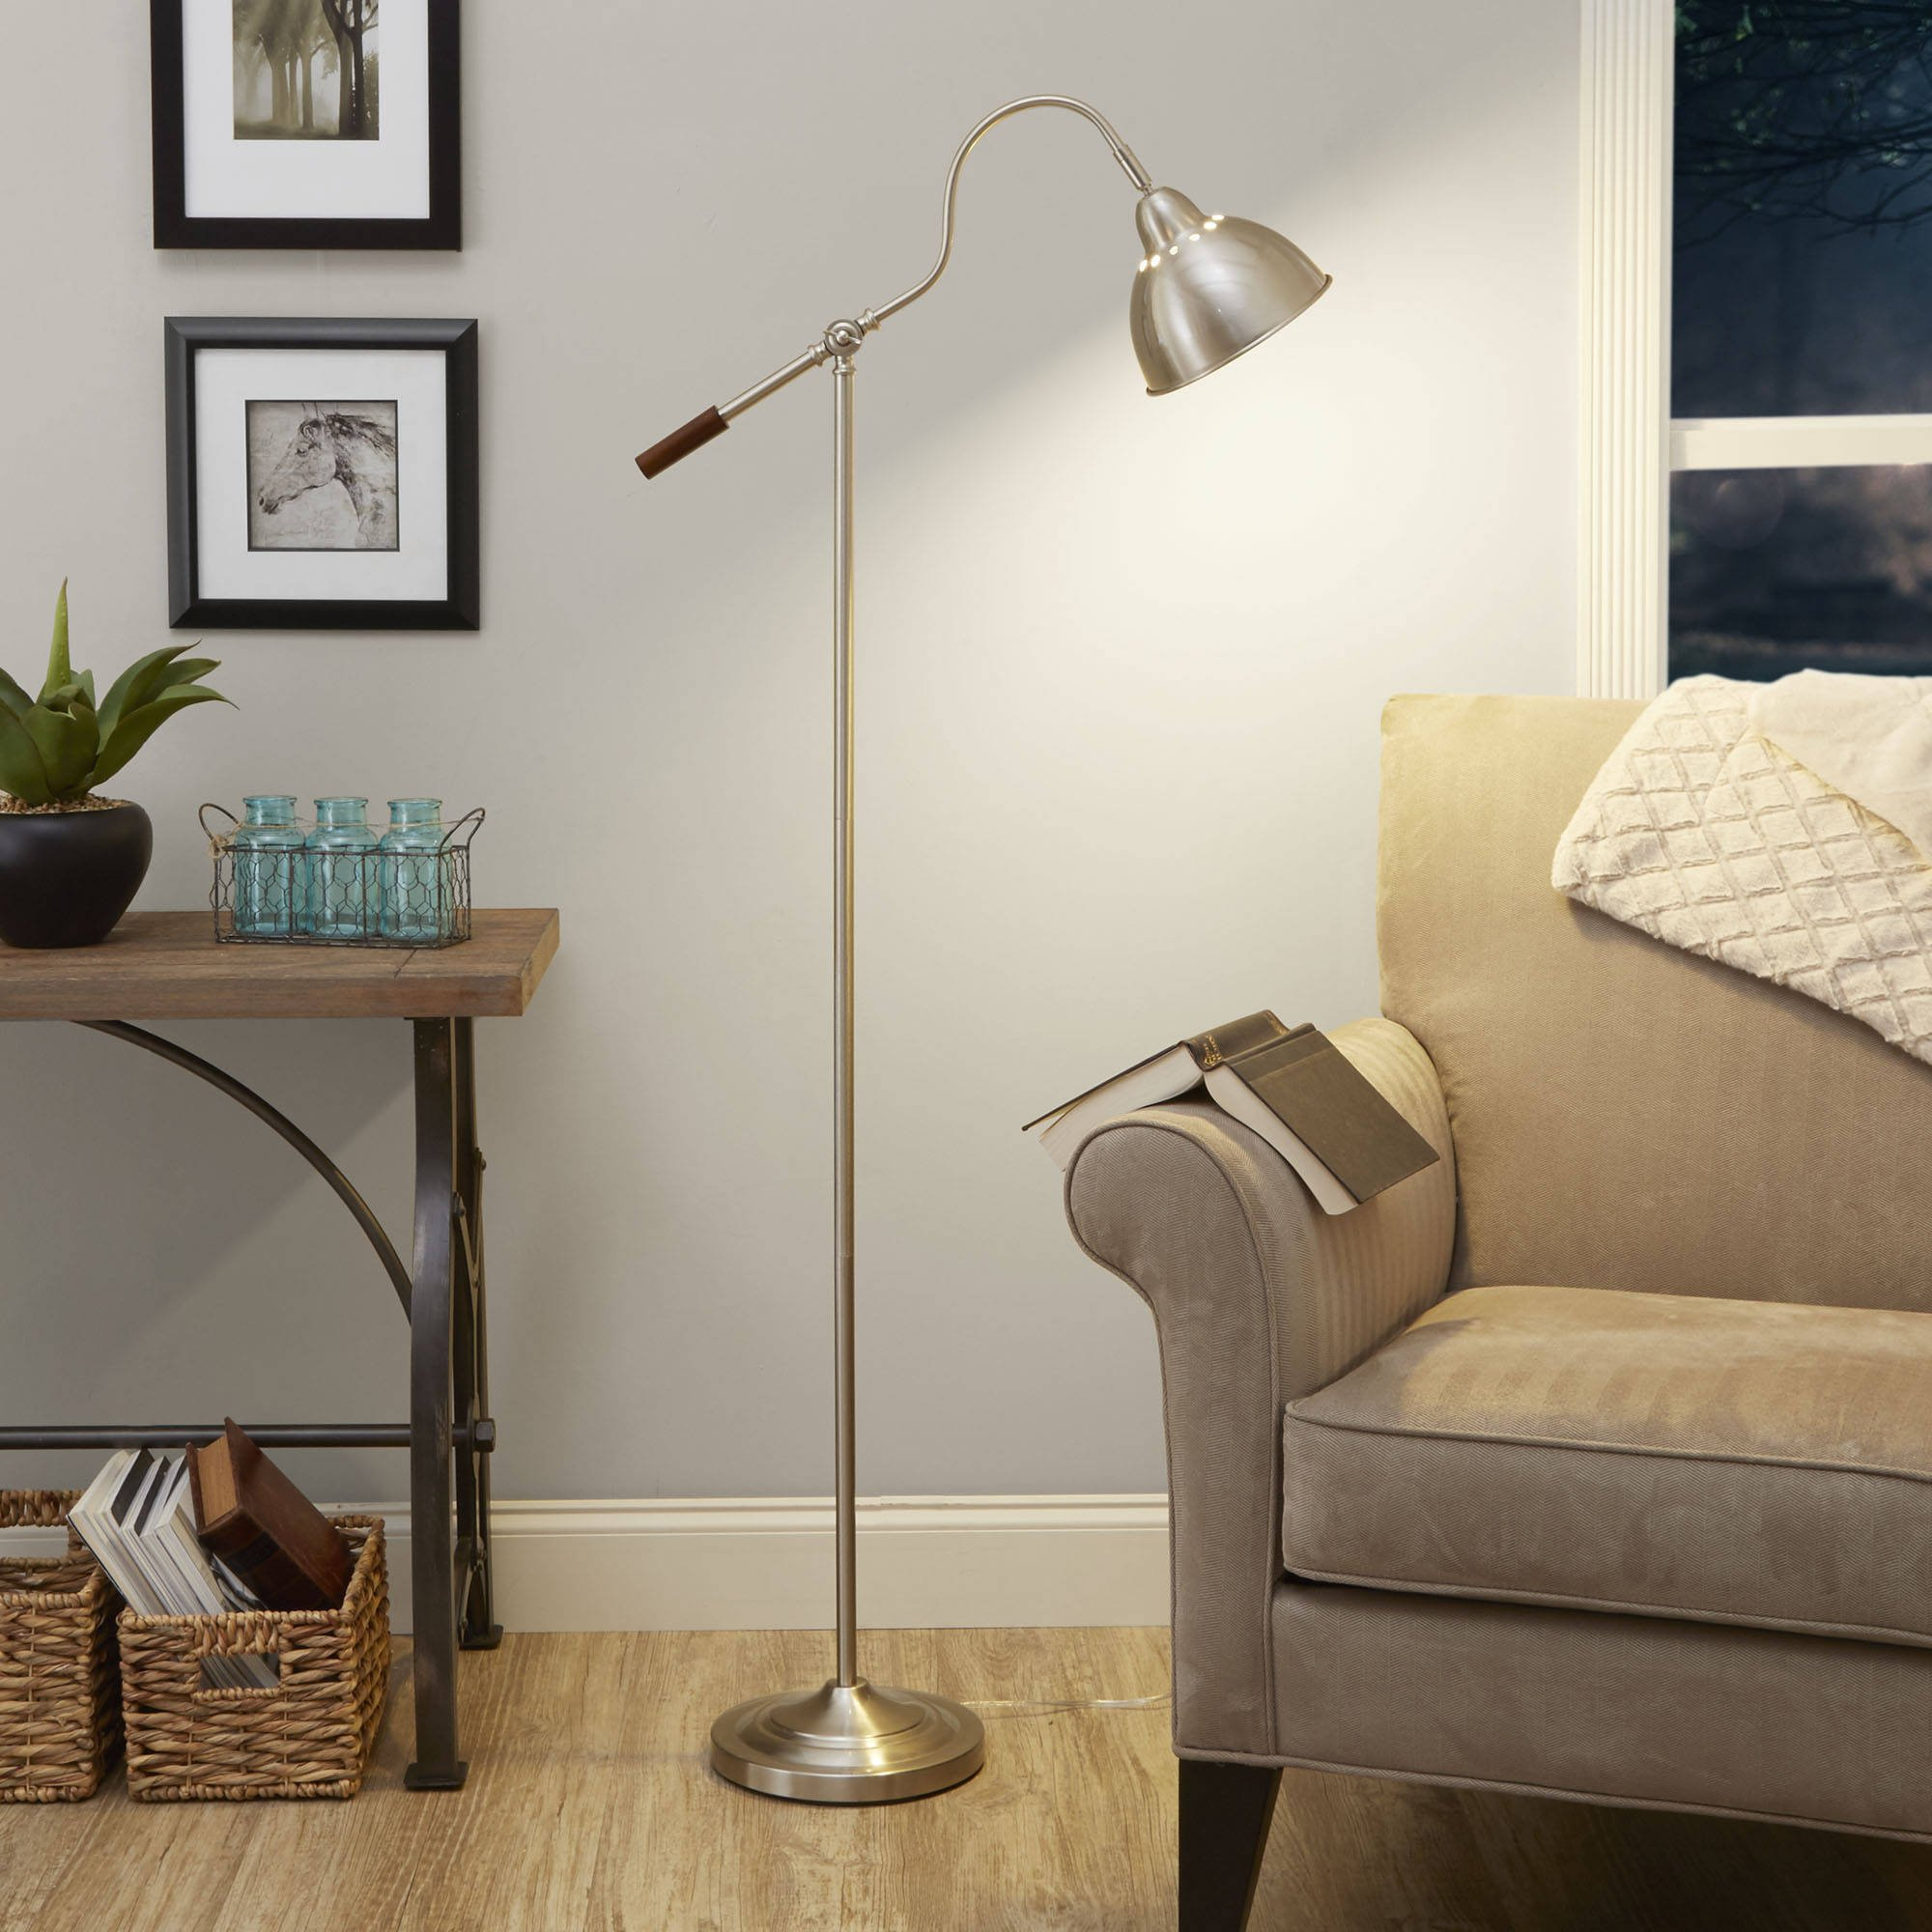 60 Inch Classic Style Dome Shade Task Floor Lamp with Adjustable Arm & Brushed Nickel Finish For Cozy Reading Corner